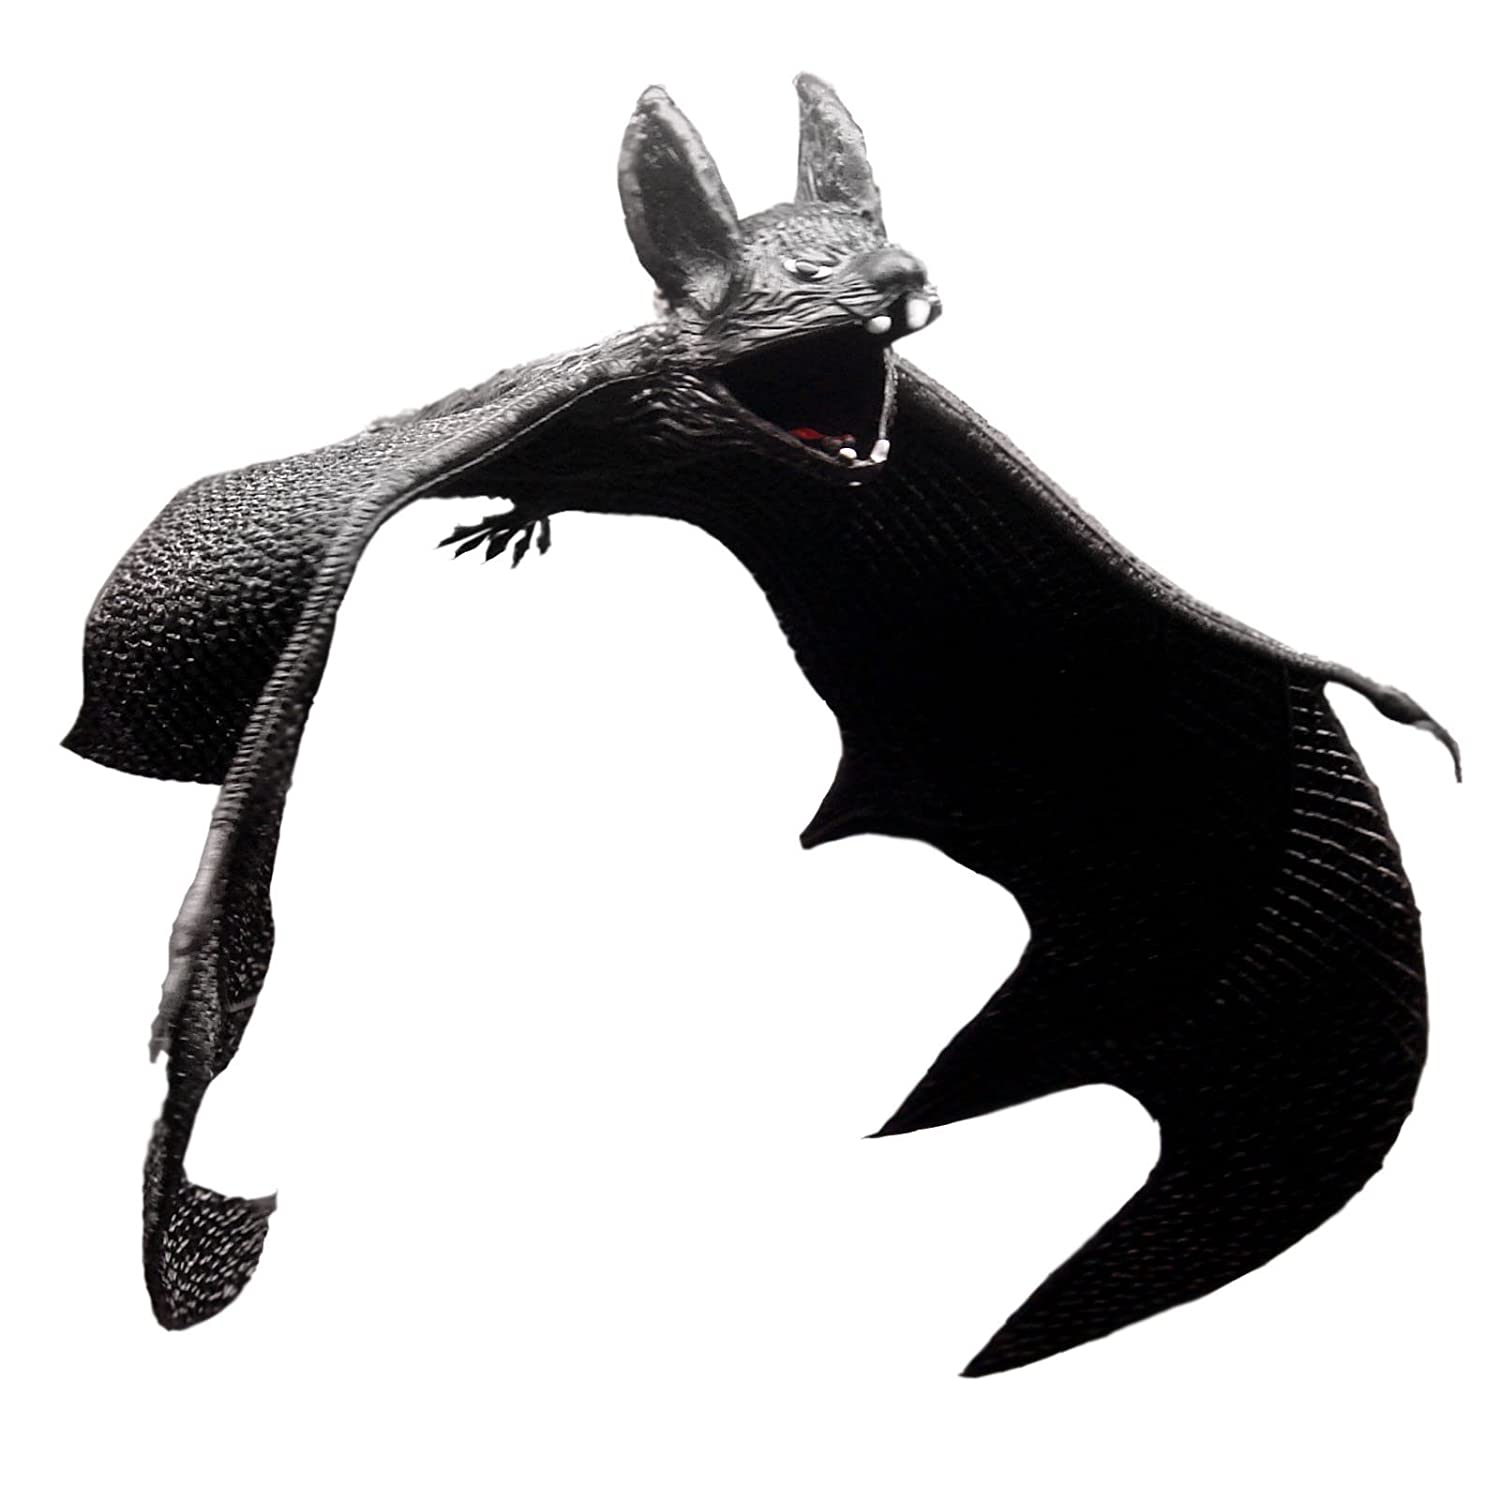 halloween horror vampire bat hanging toy prop party decoration amazoncouk toys games - Halloween Bat Decorations